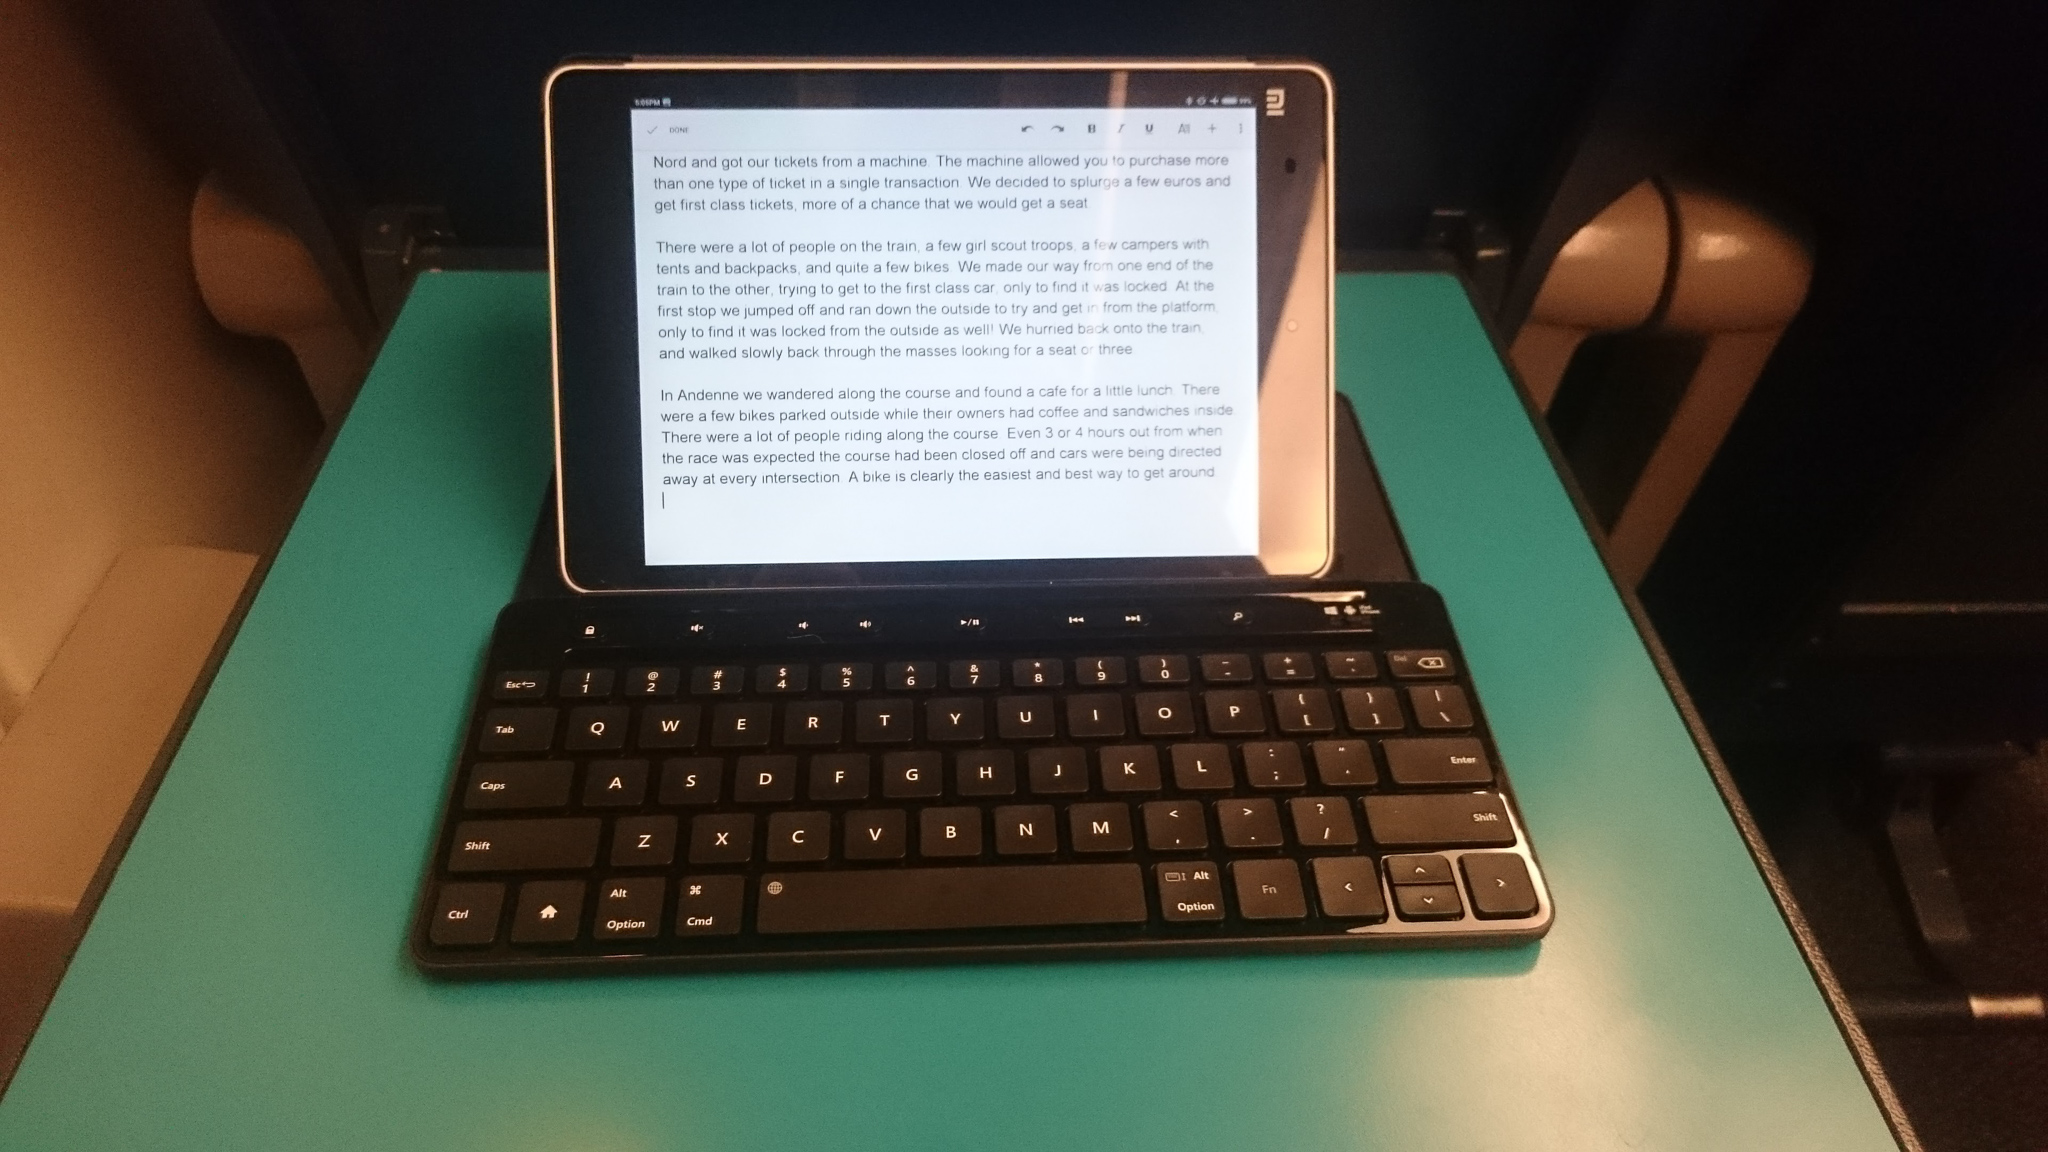 Xiaomi Mi Pad and the Microsoft Universal Keyboard